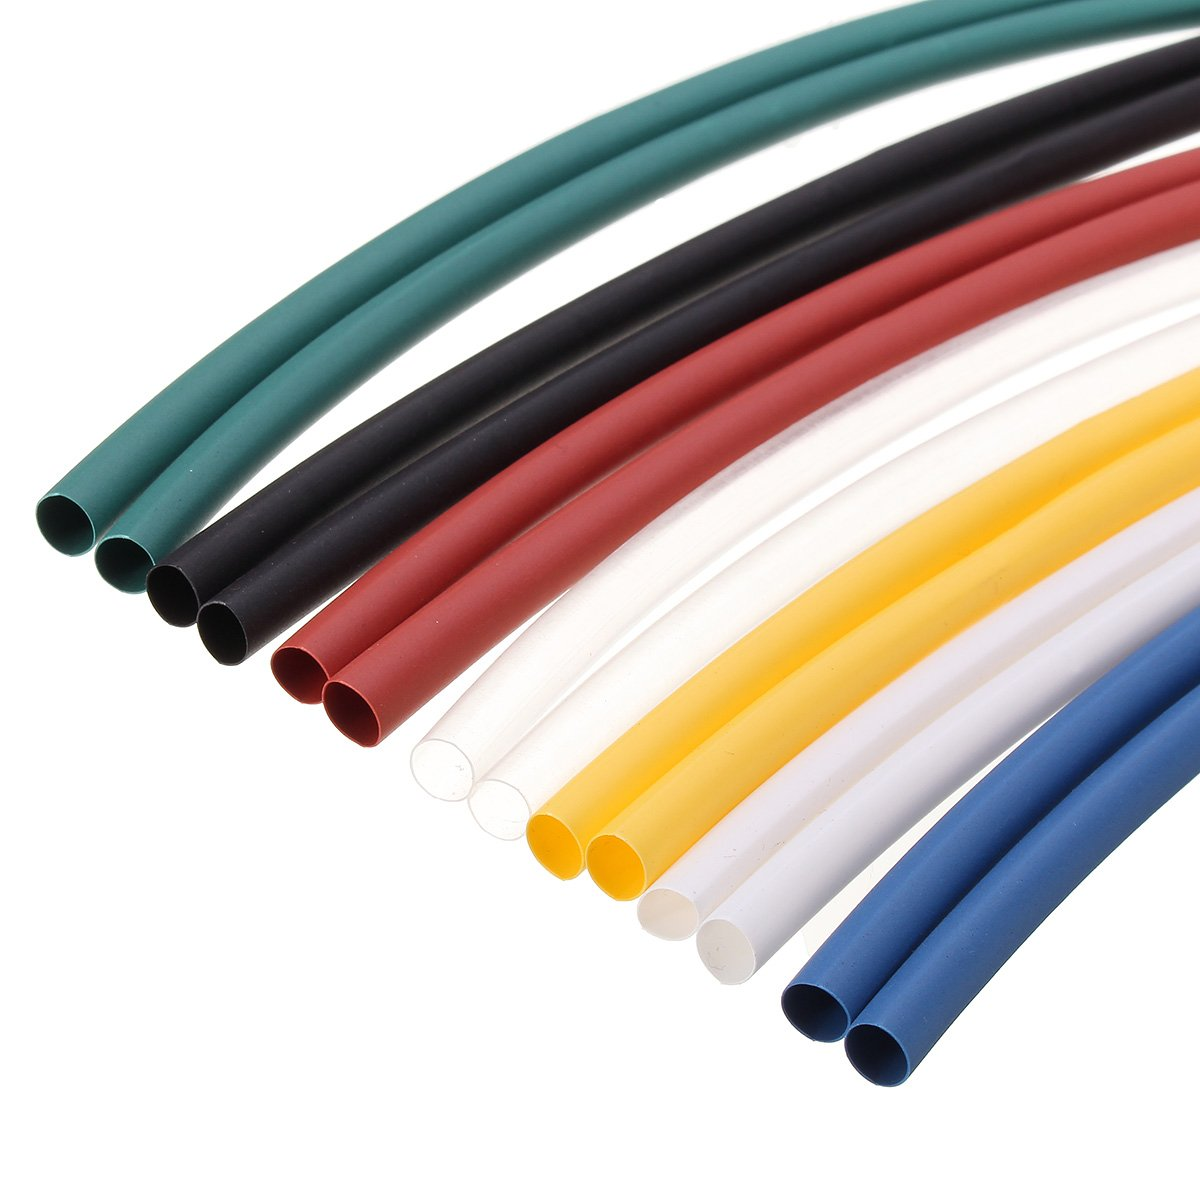 Heat Shrink Tubing, 70pcs 2:1 Heat Shrink Tubing,Wire Cable Wrap Electrical Insulation Tube Electric Insulation Tube - For Automotive, Household, Audio, Video Applications (7 Color)